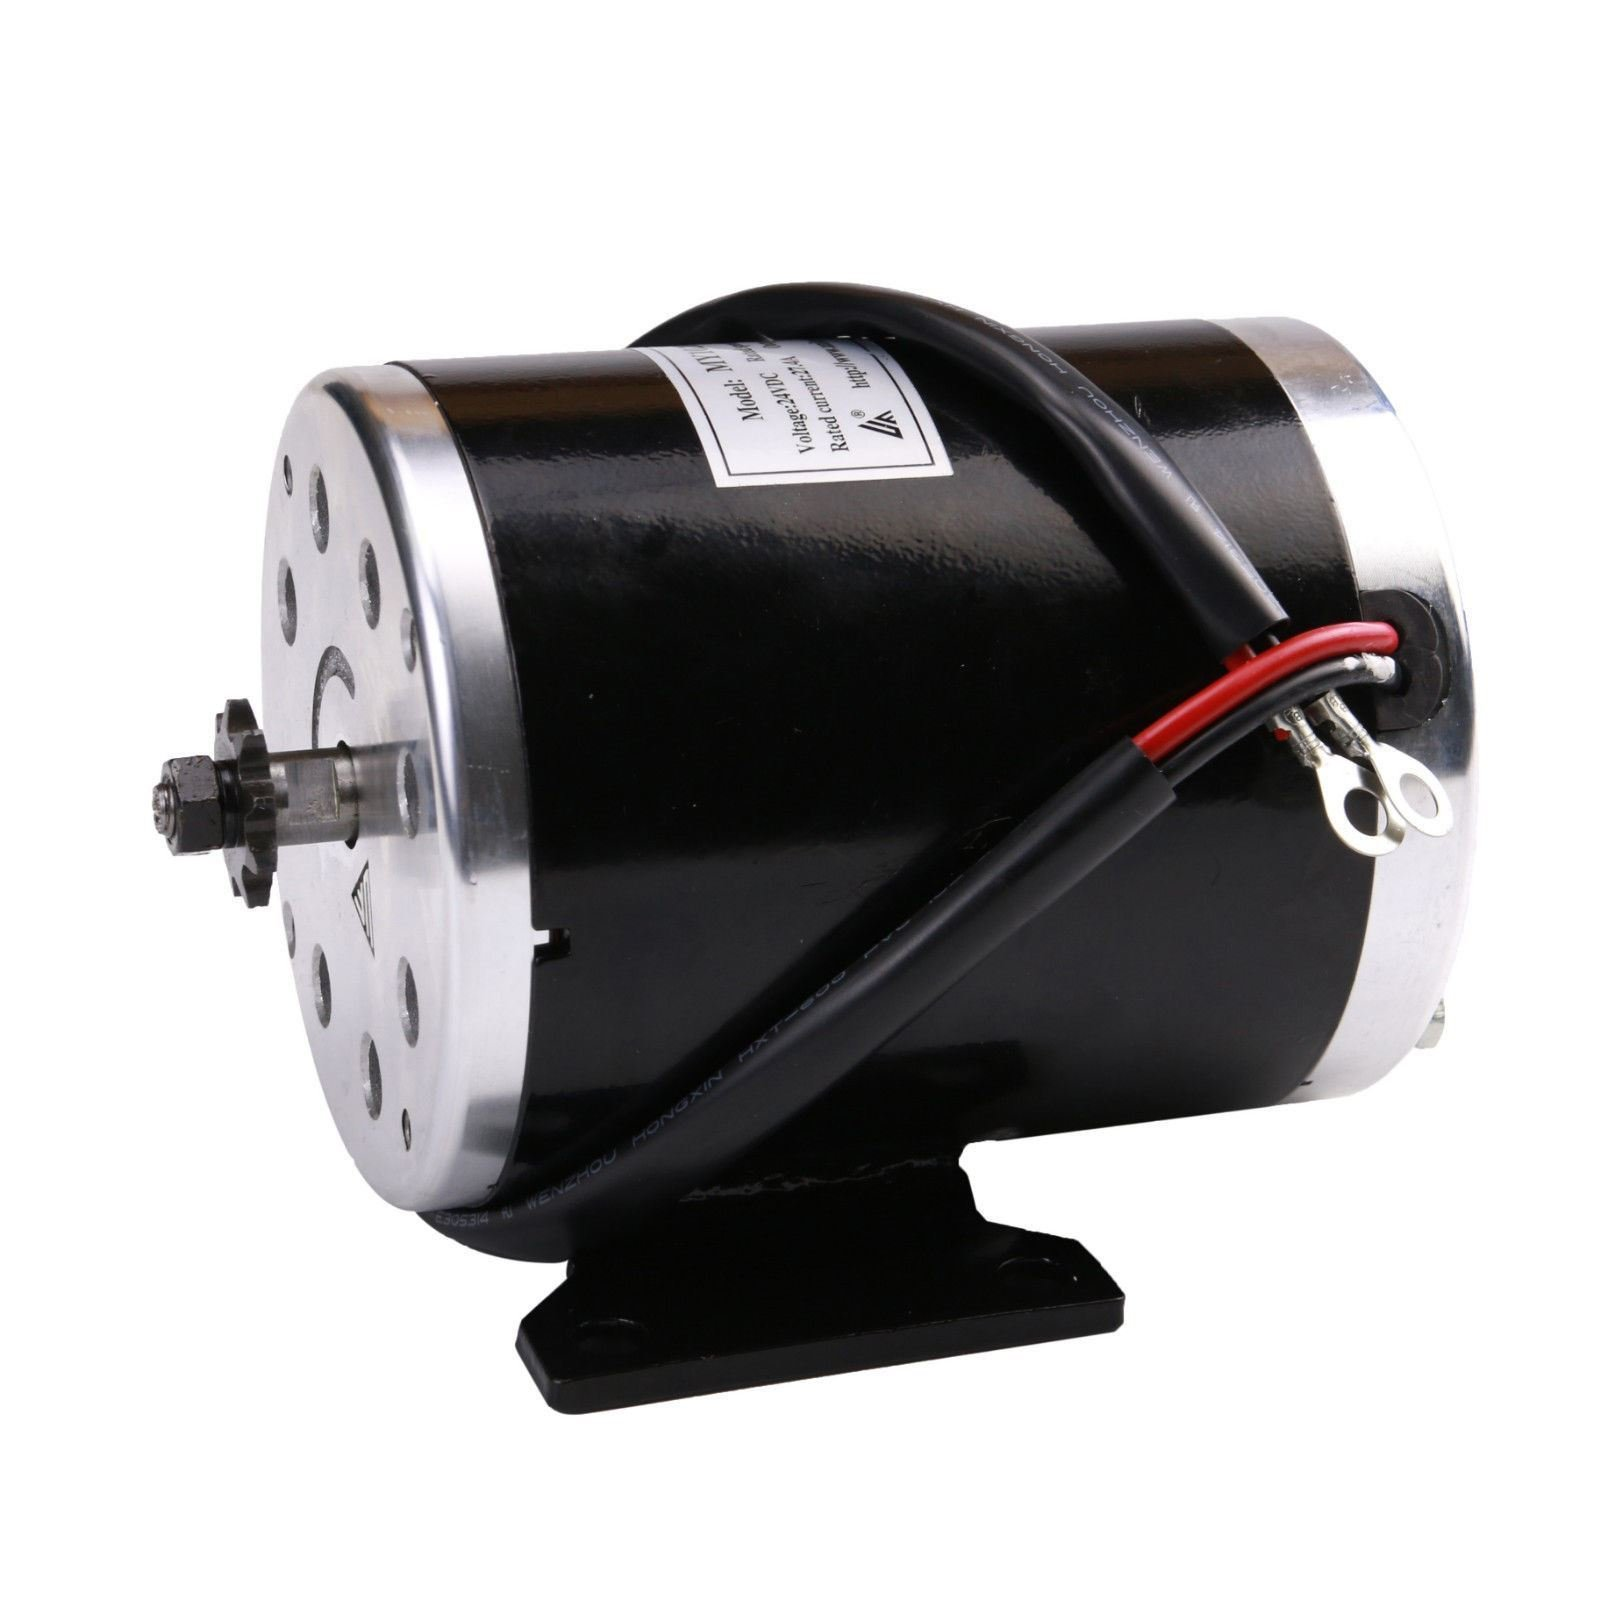 TDPRO 24V 500W Brush Electric Motor for Go Kart Scooter E Bike Motorized Bicycle ATV Moped Mini Bikes | #T8F Chain Brushed Motor